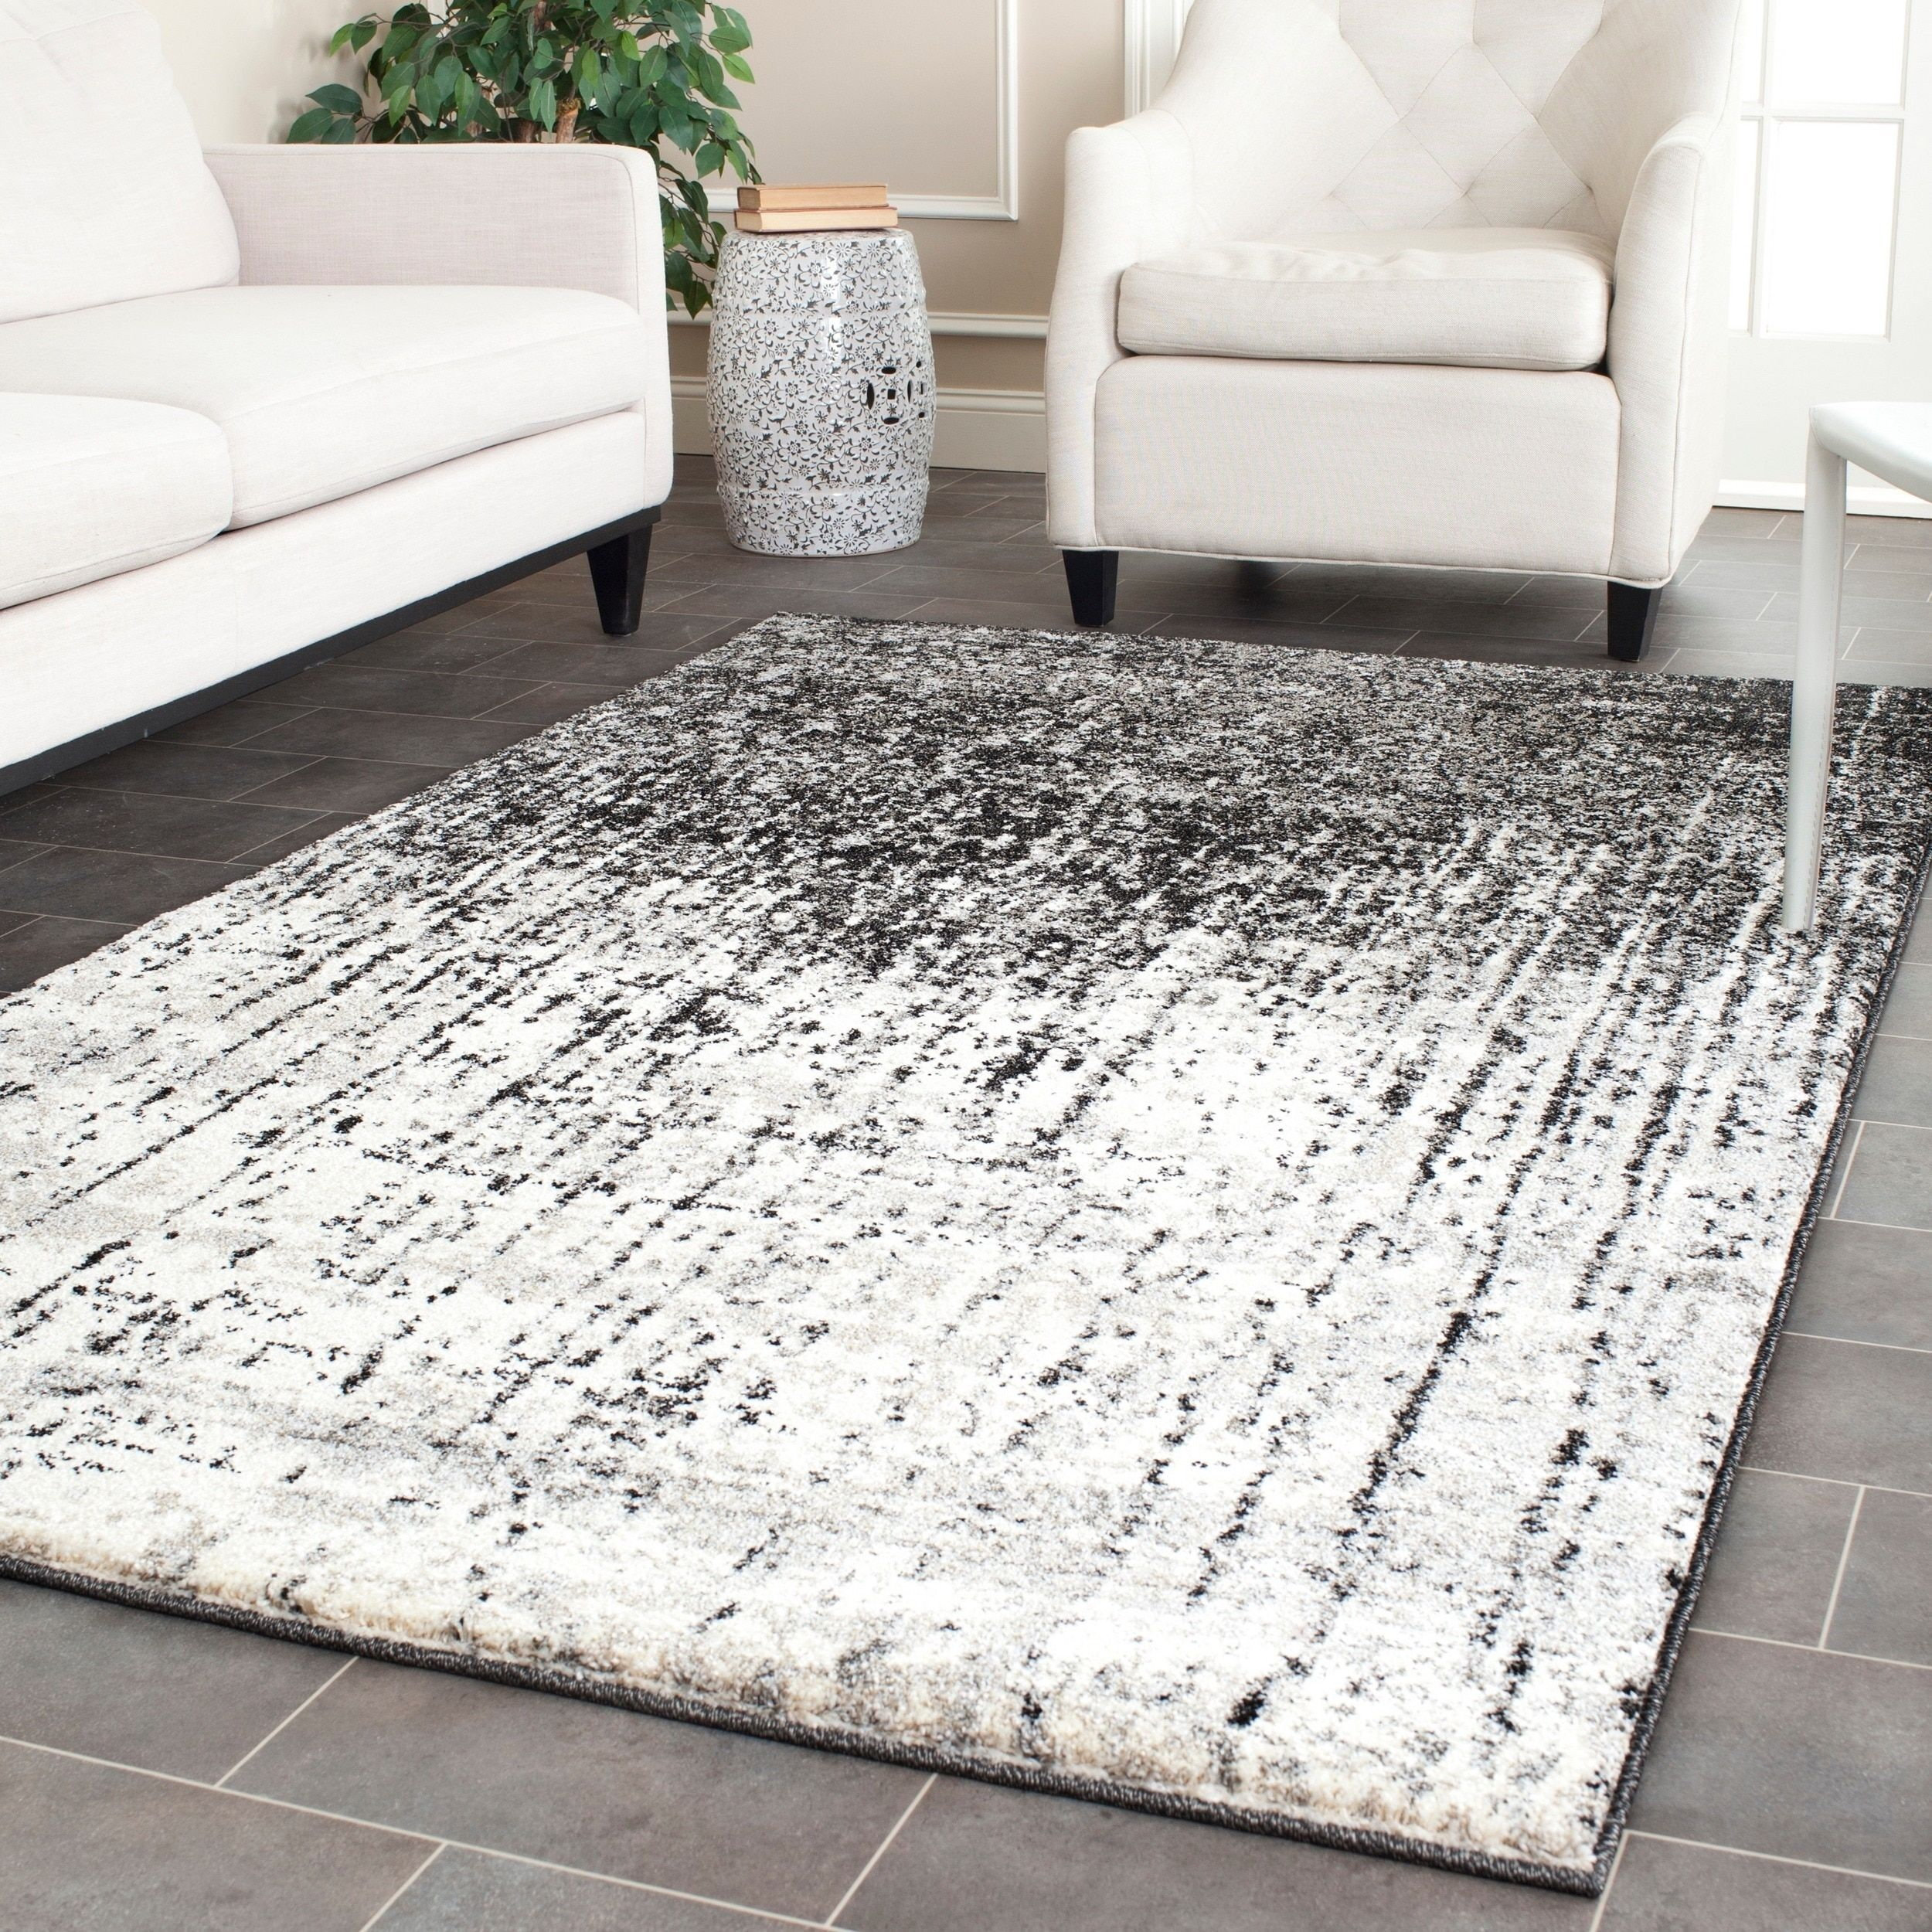 On Area Rugs Free Shipping Orders Over 45 Find The Perfect